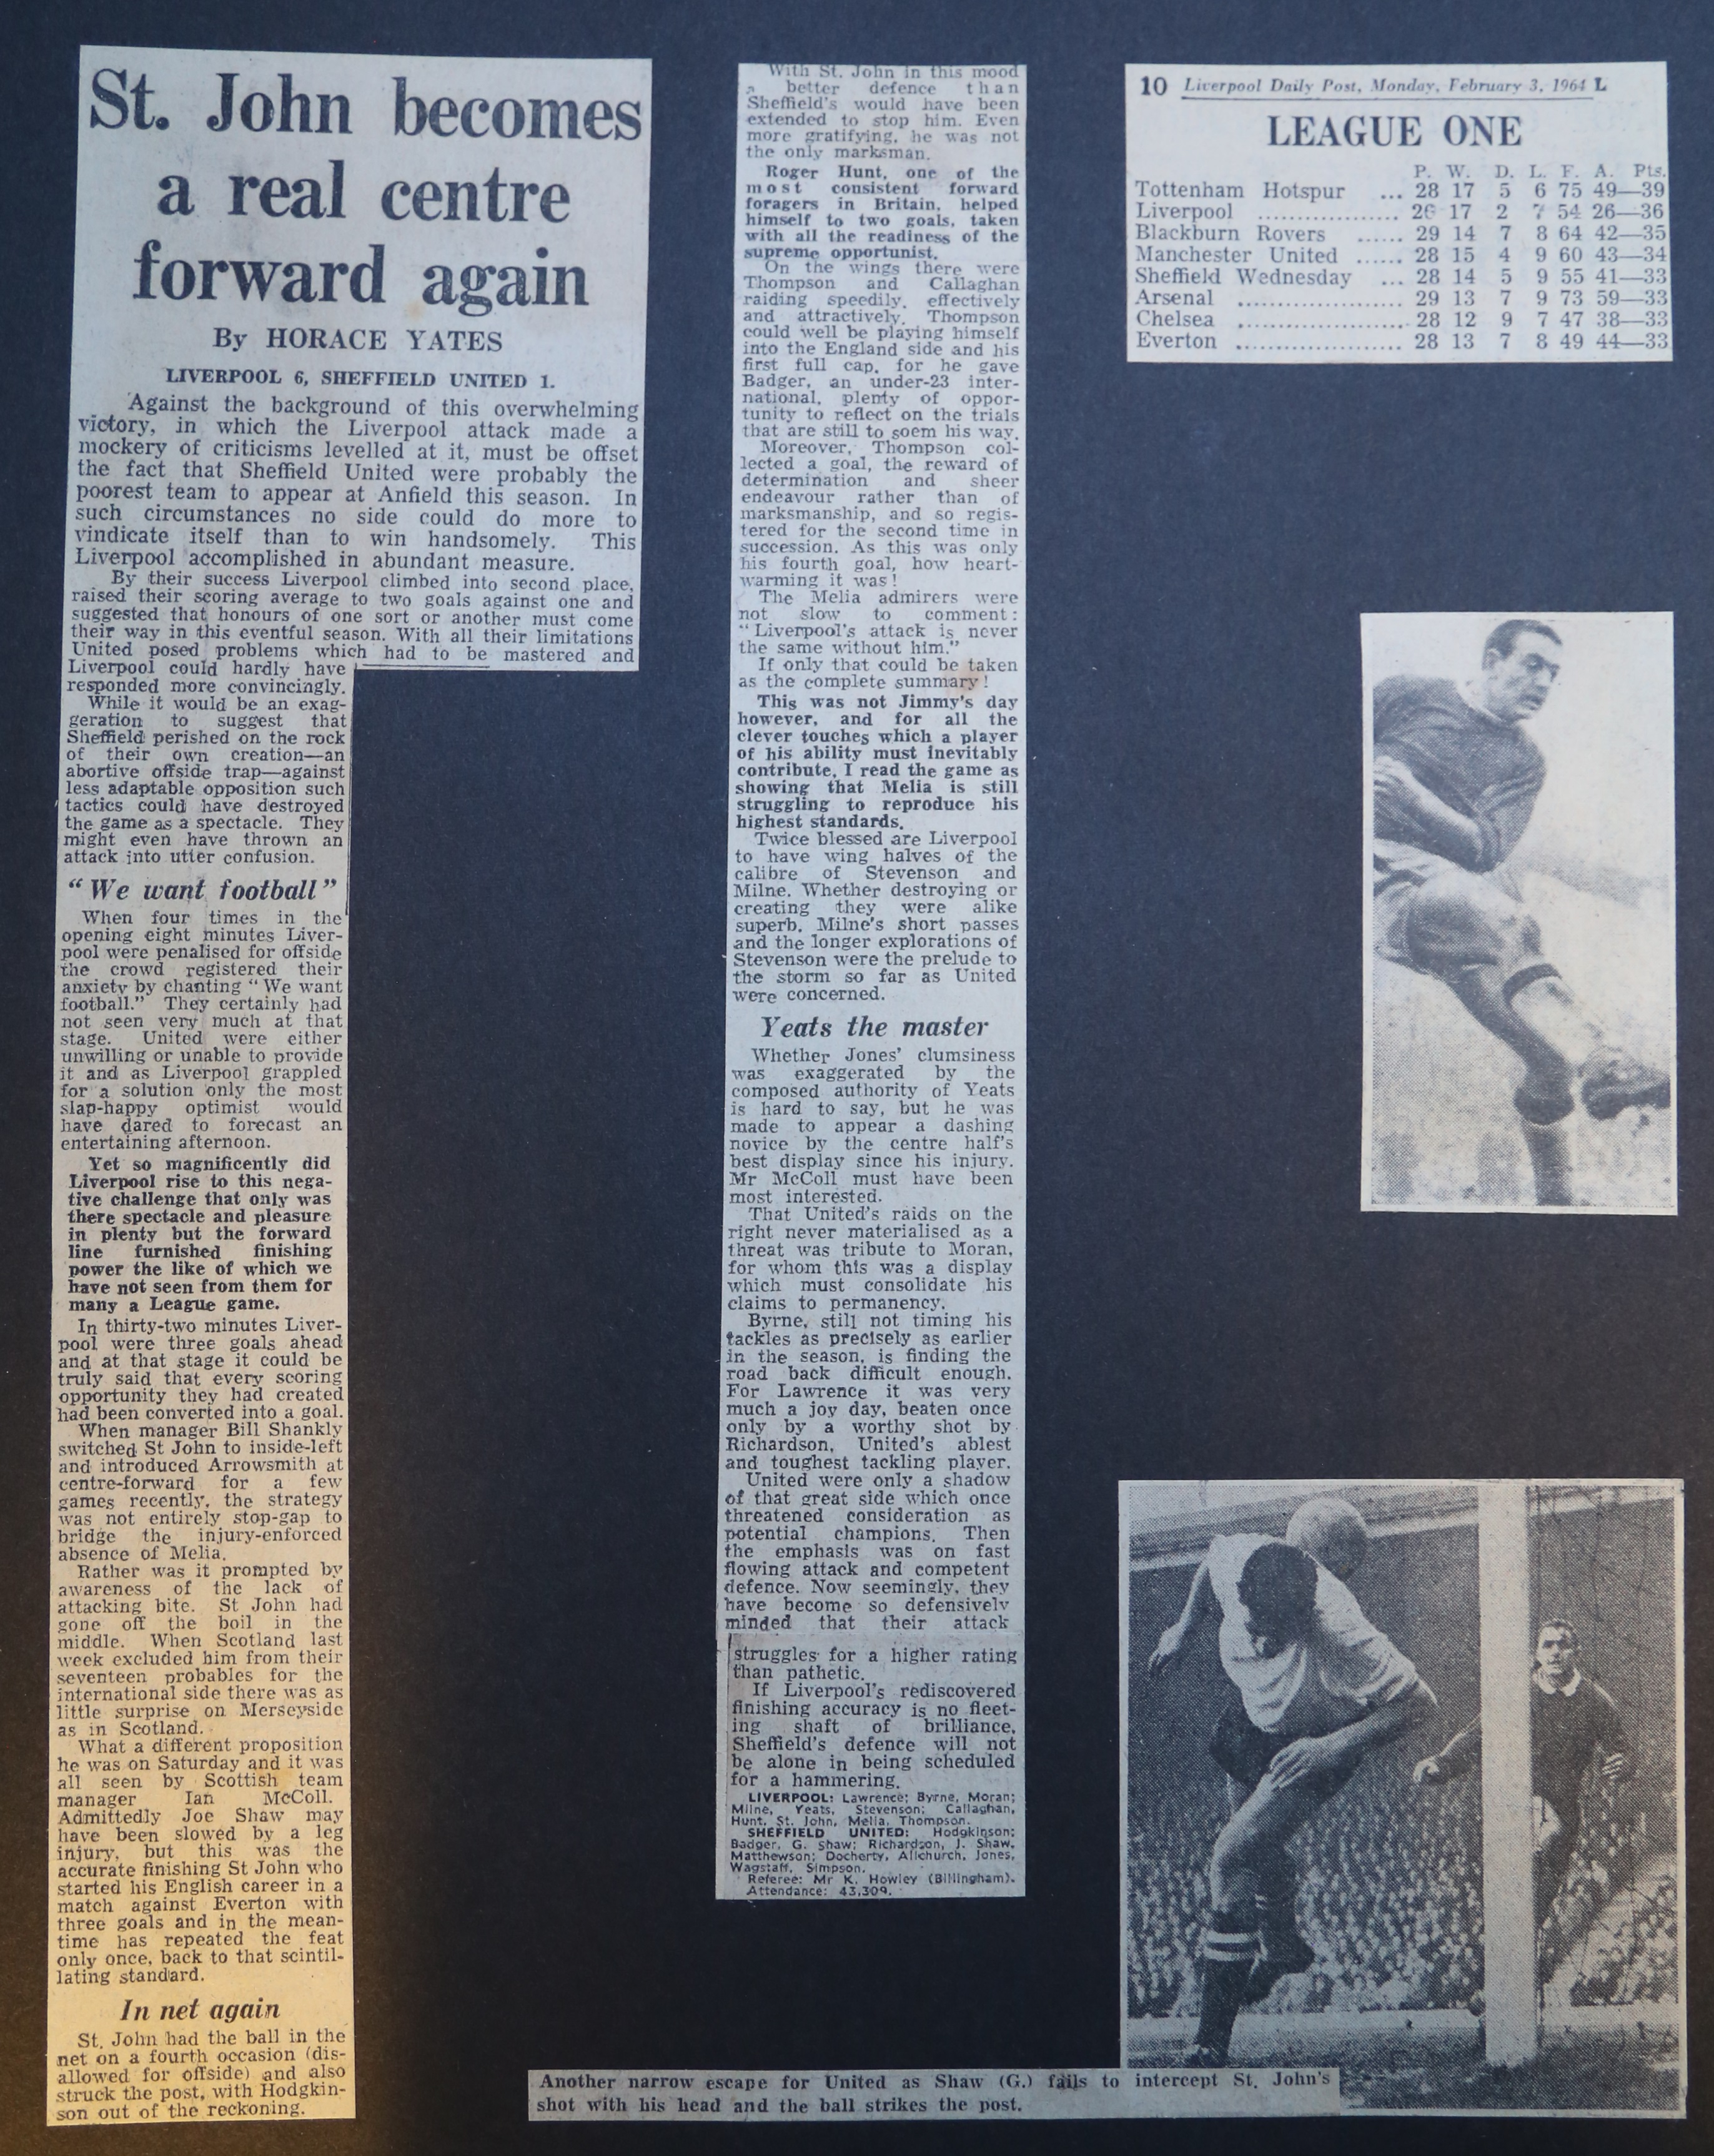 St John becomes a real centre forward again! - 1 February 1964